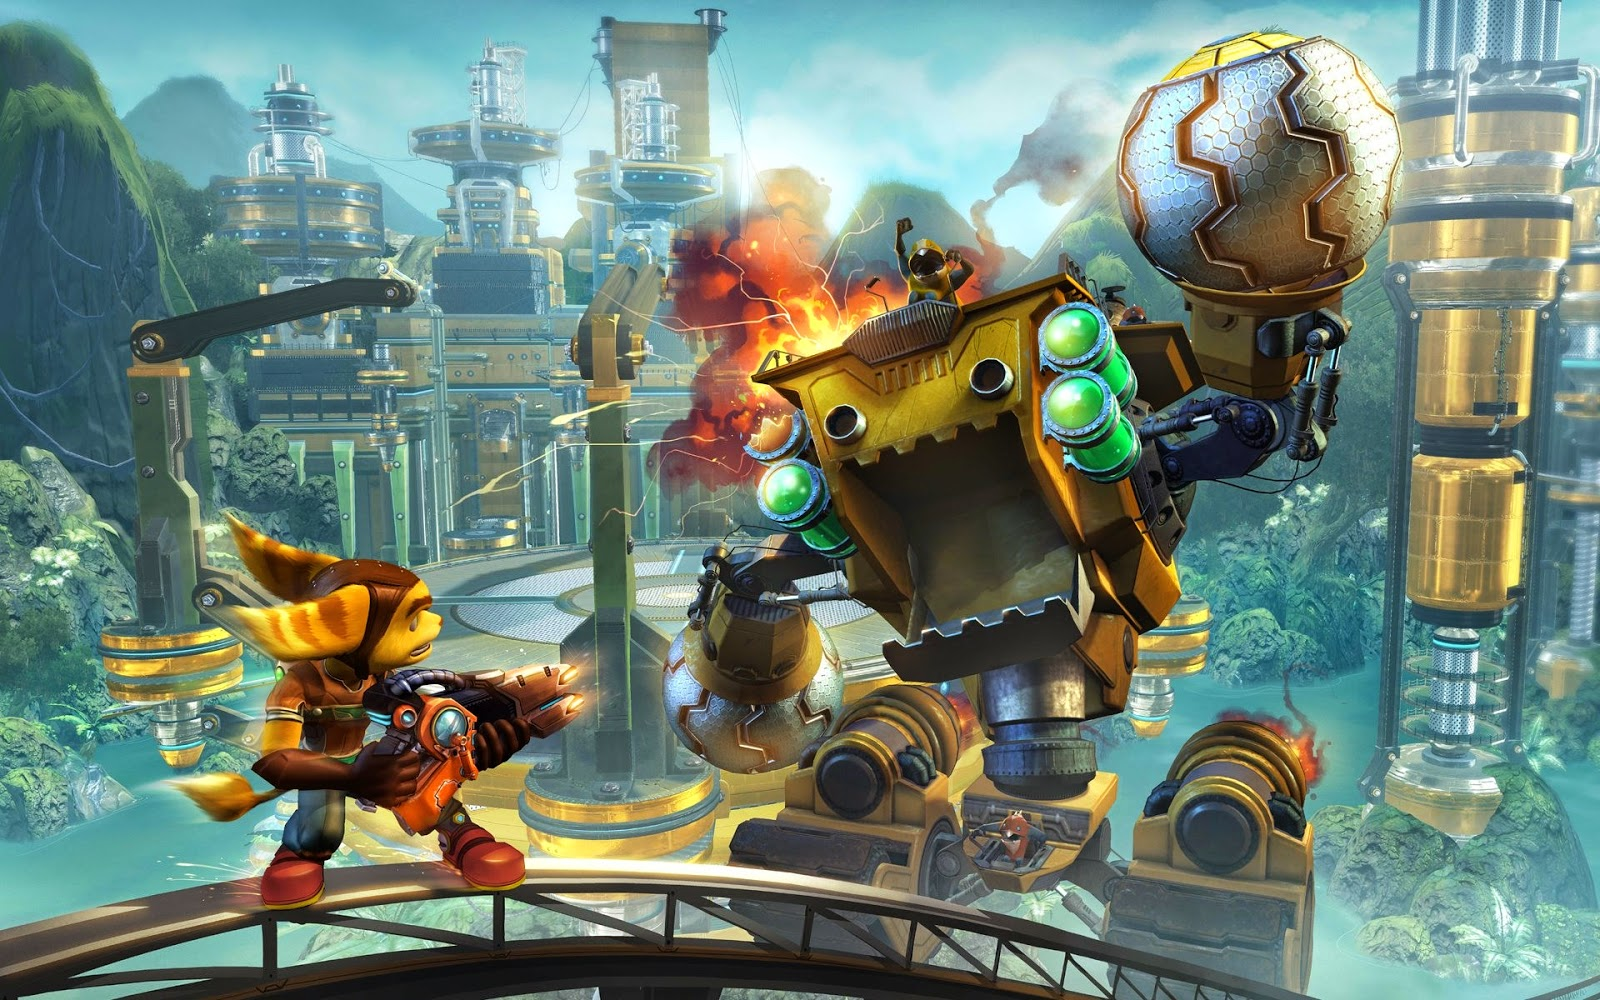 ratchet-and-clank-wallpaper.jpg